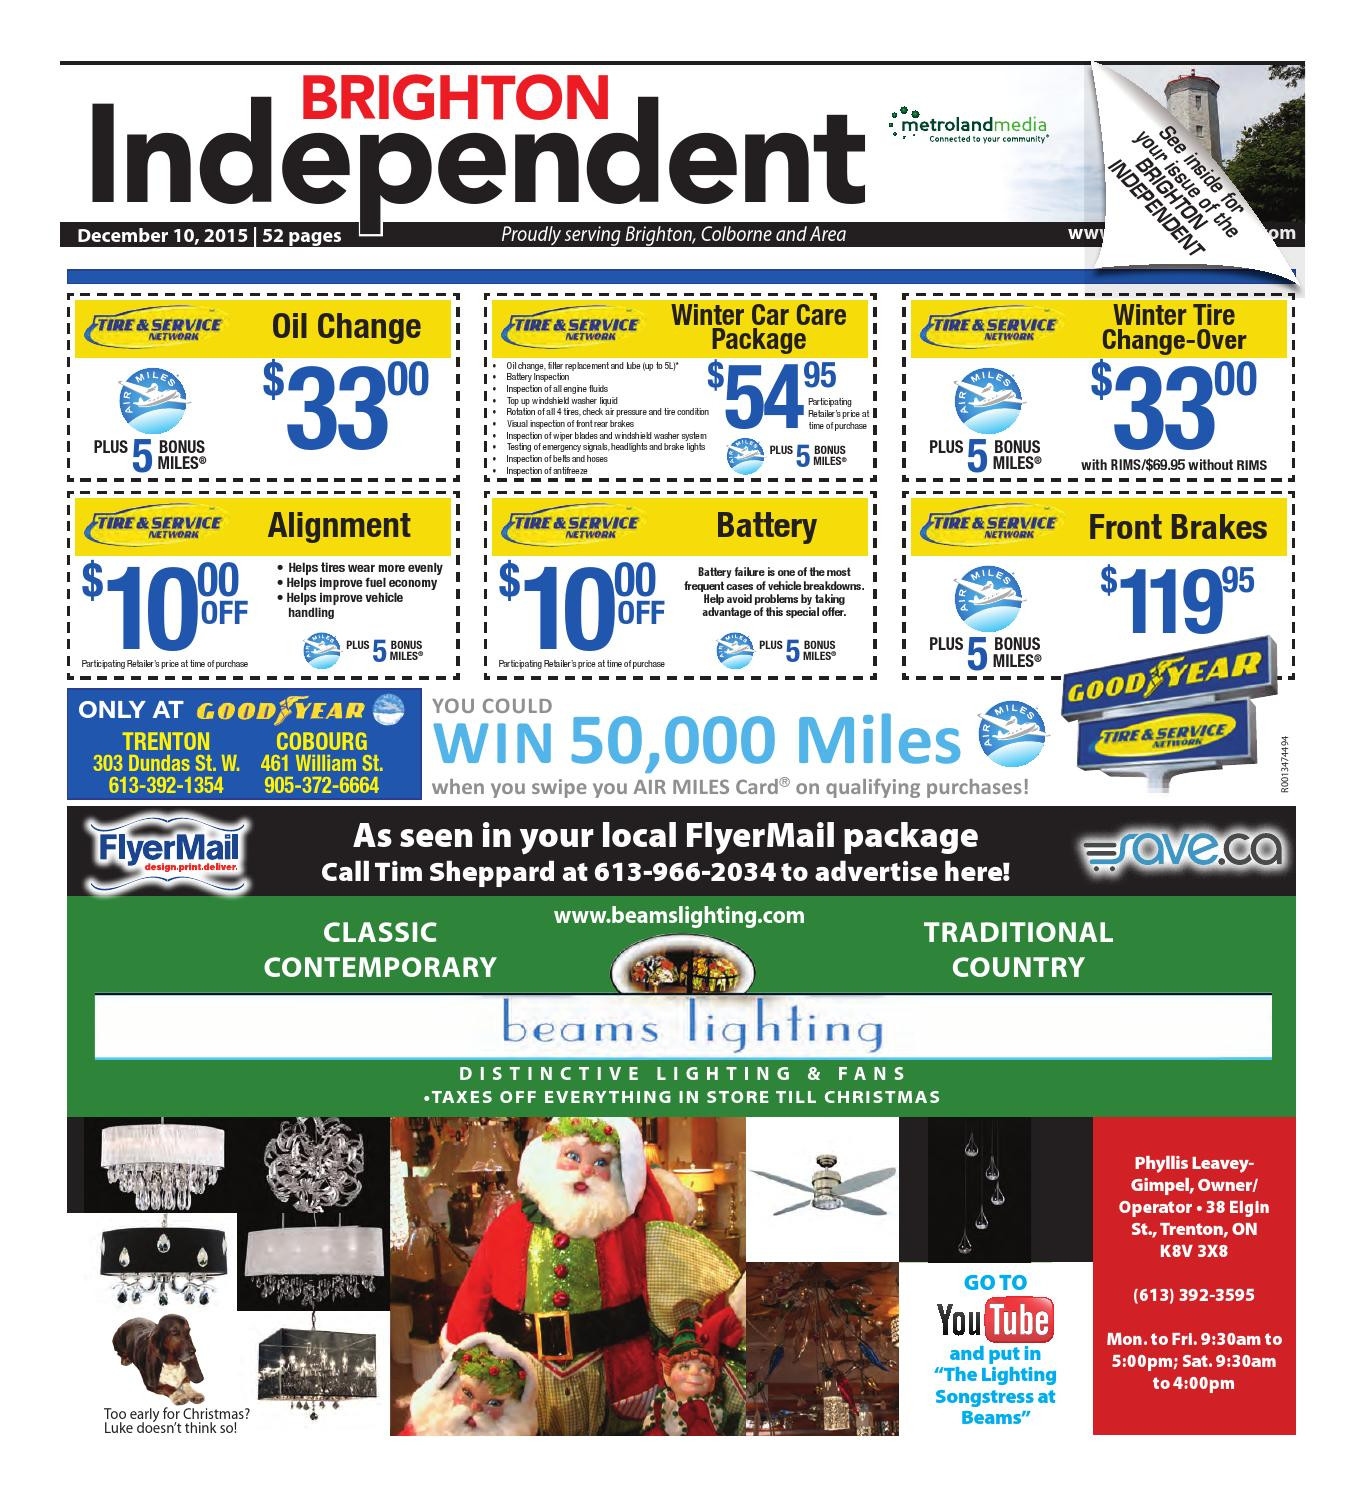 engineered hardwood flooring clearance closeout of brighton121015 by metroland east brighton independent issuu inside page 1